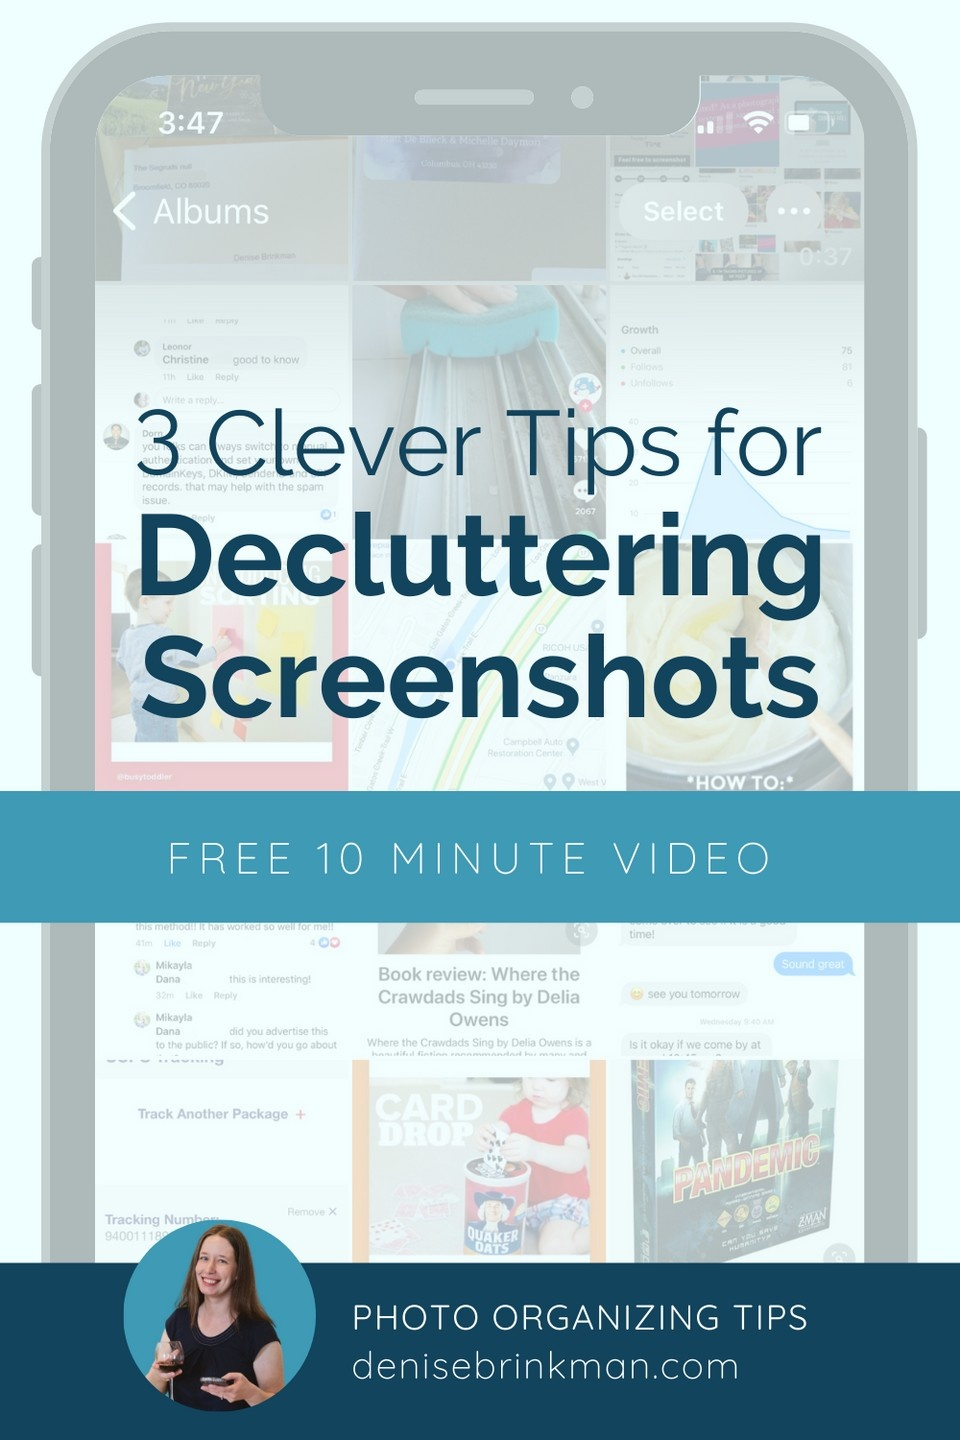 3 Clever Tips for Decluttering Screenshots